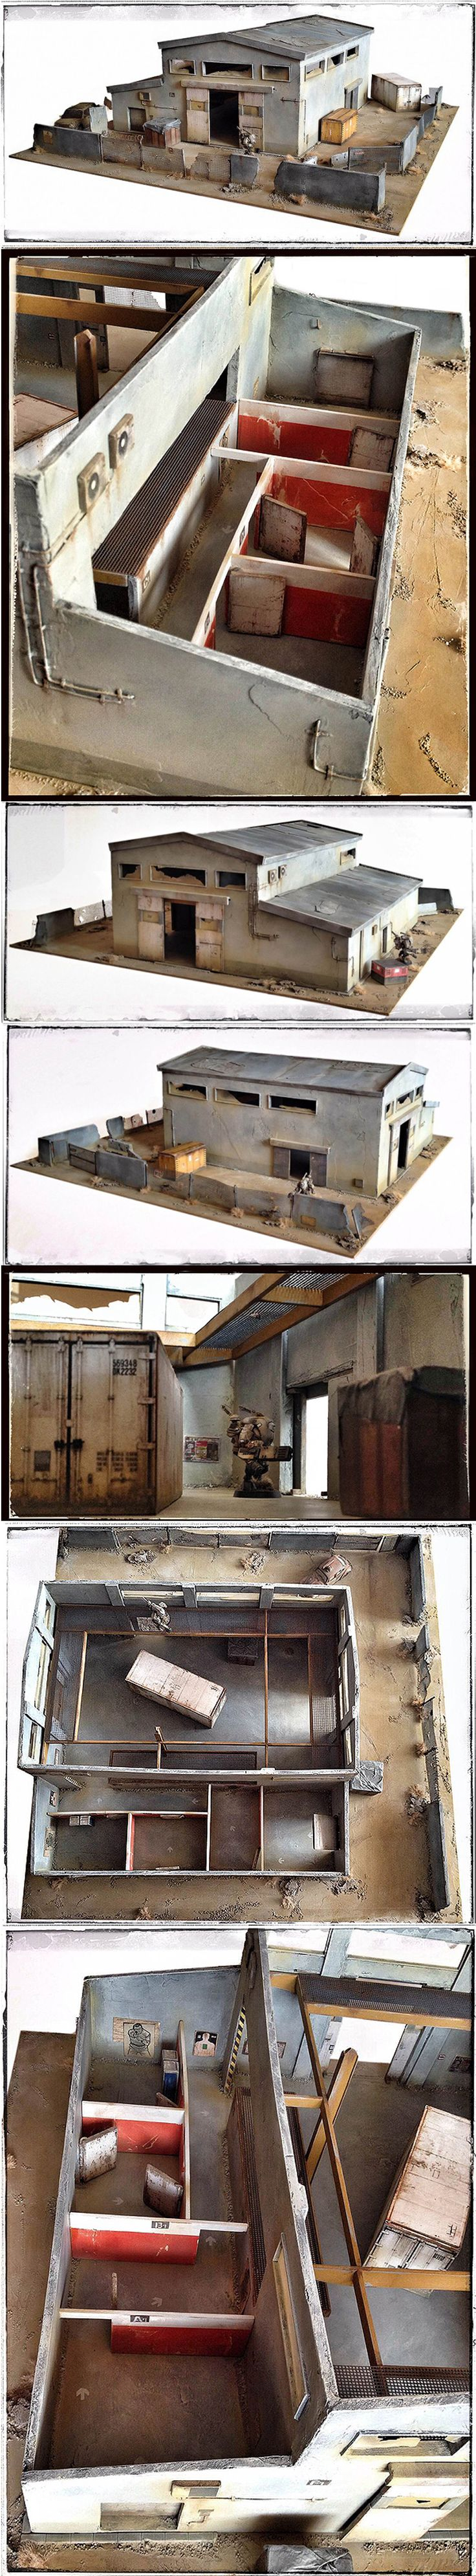 unique SHOOTING HALL WIP details + painted / dedicate to 28mm Infinity, Neuroshima, WH40K ... STILL FOR SALE